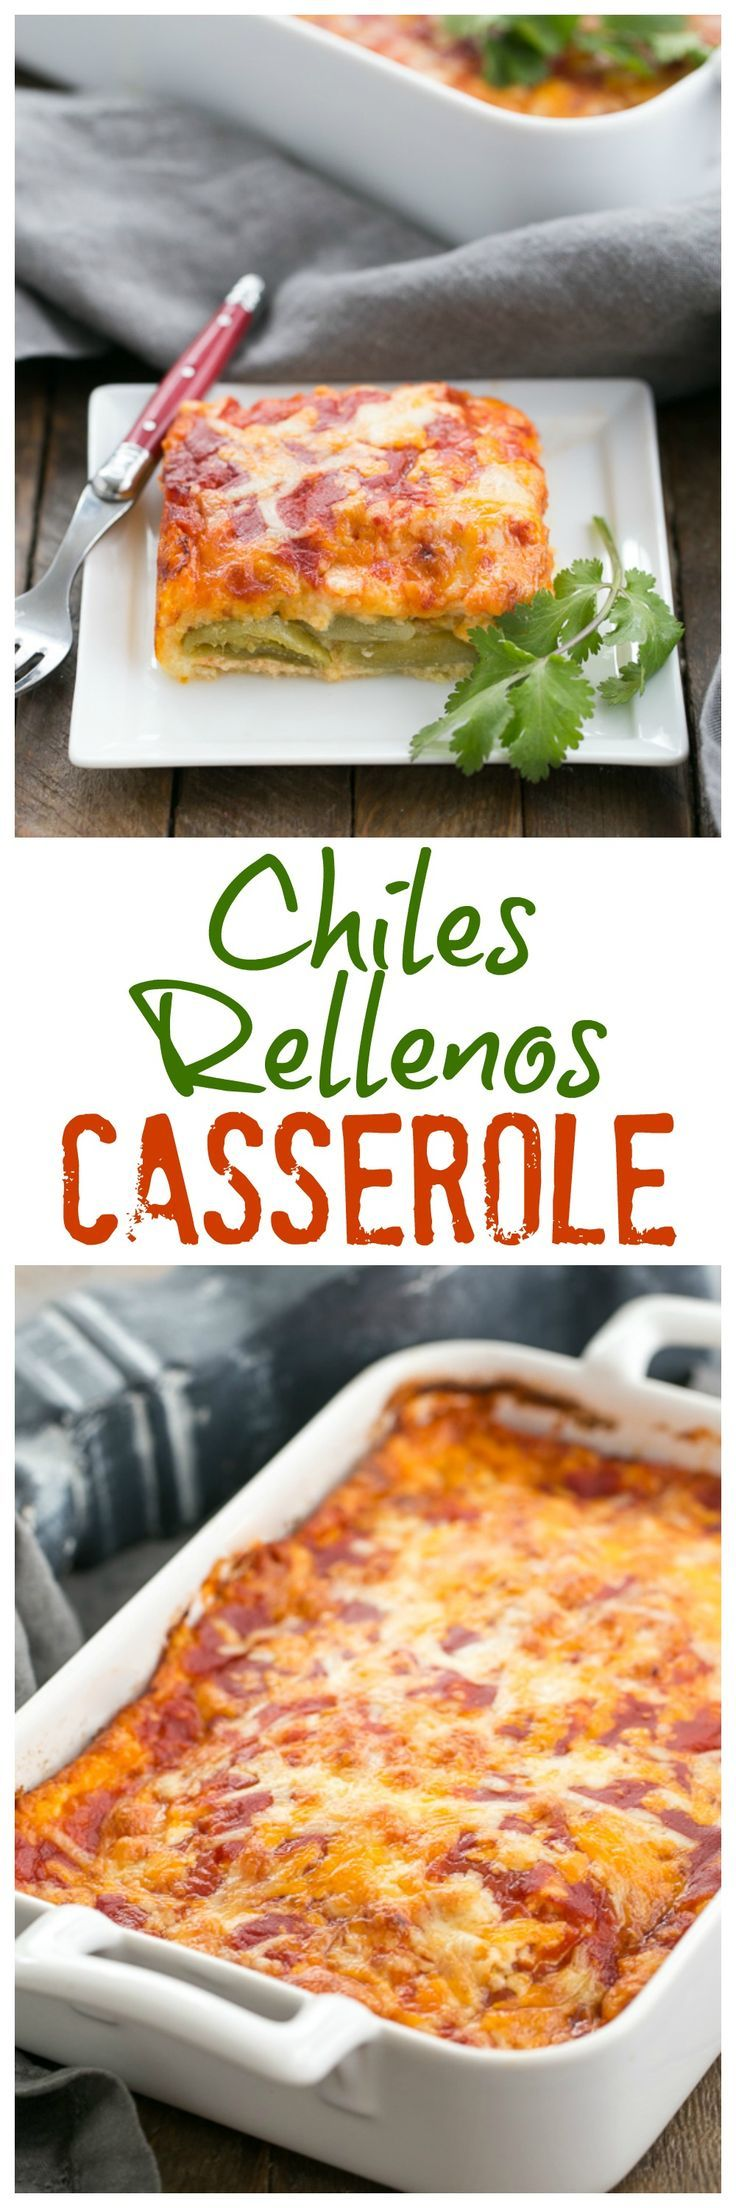 Chiles Rellenos Casserole | A super easy version of the classic Tex-Mex dish @lizzydo